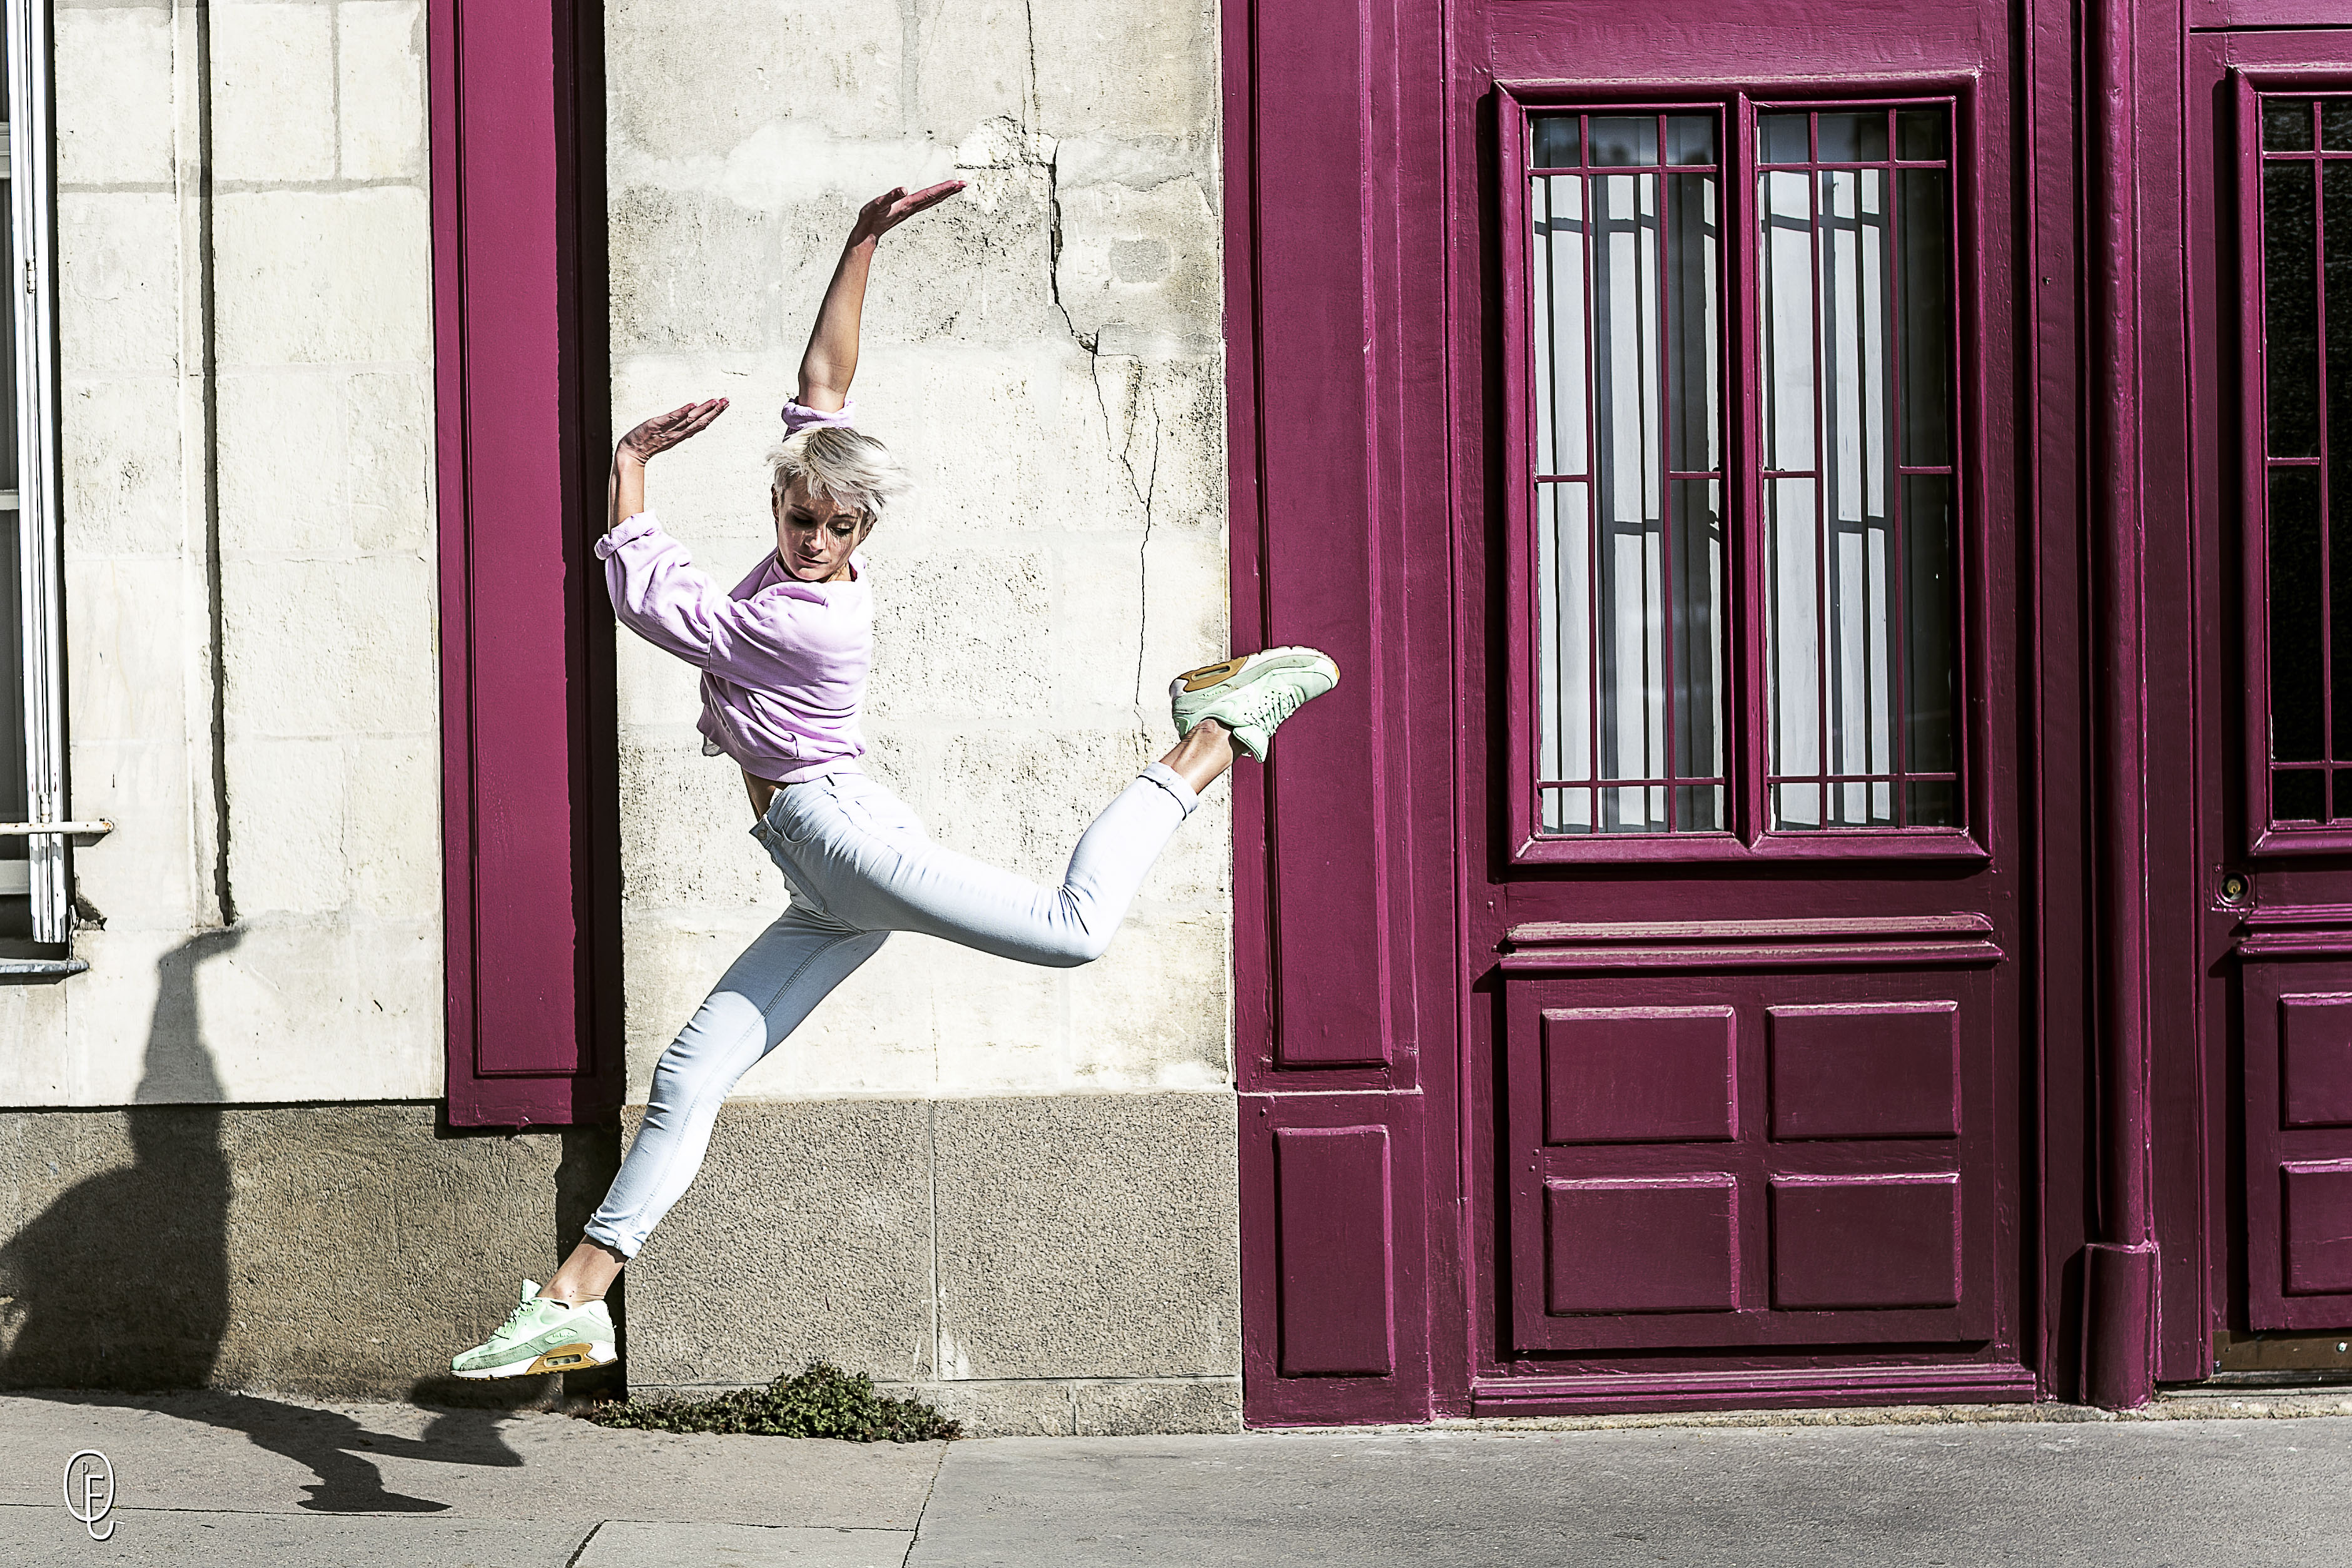 Photographe Nantes, Portrait, Book Pro, Nantes, Photo Book, Photo de Danse, Photographe pro.